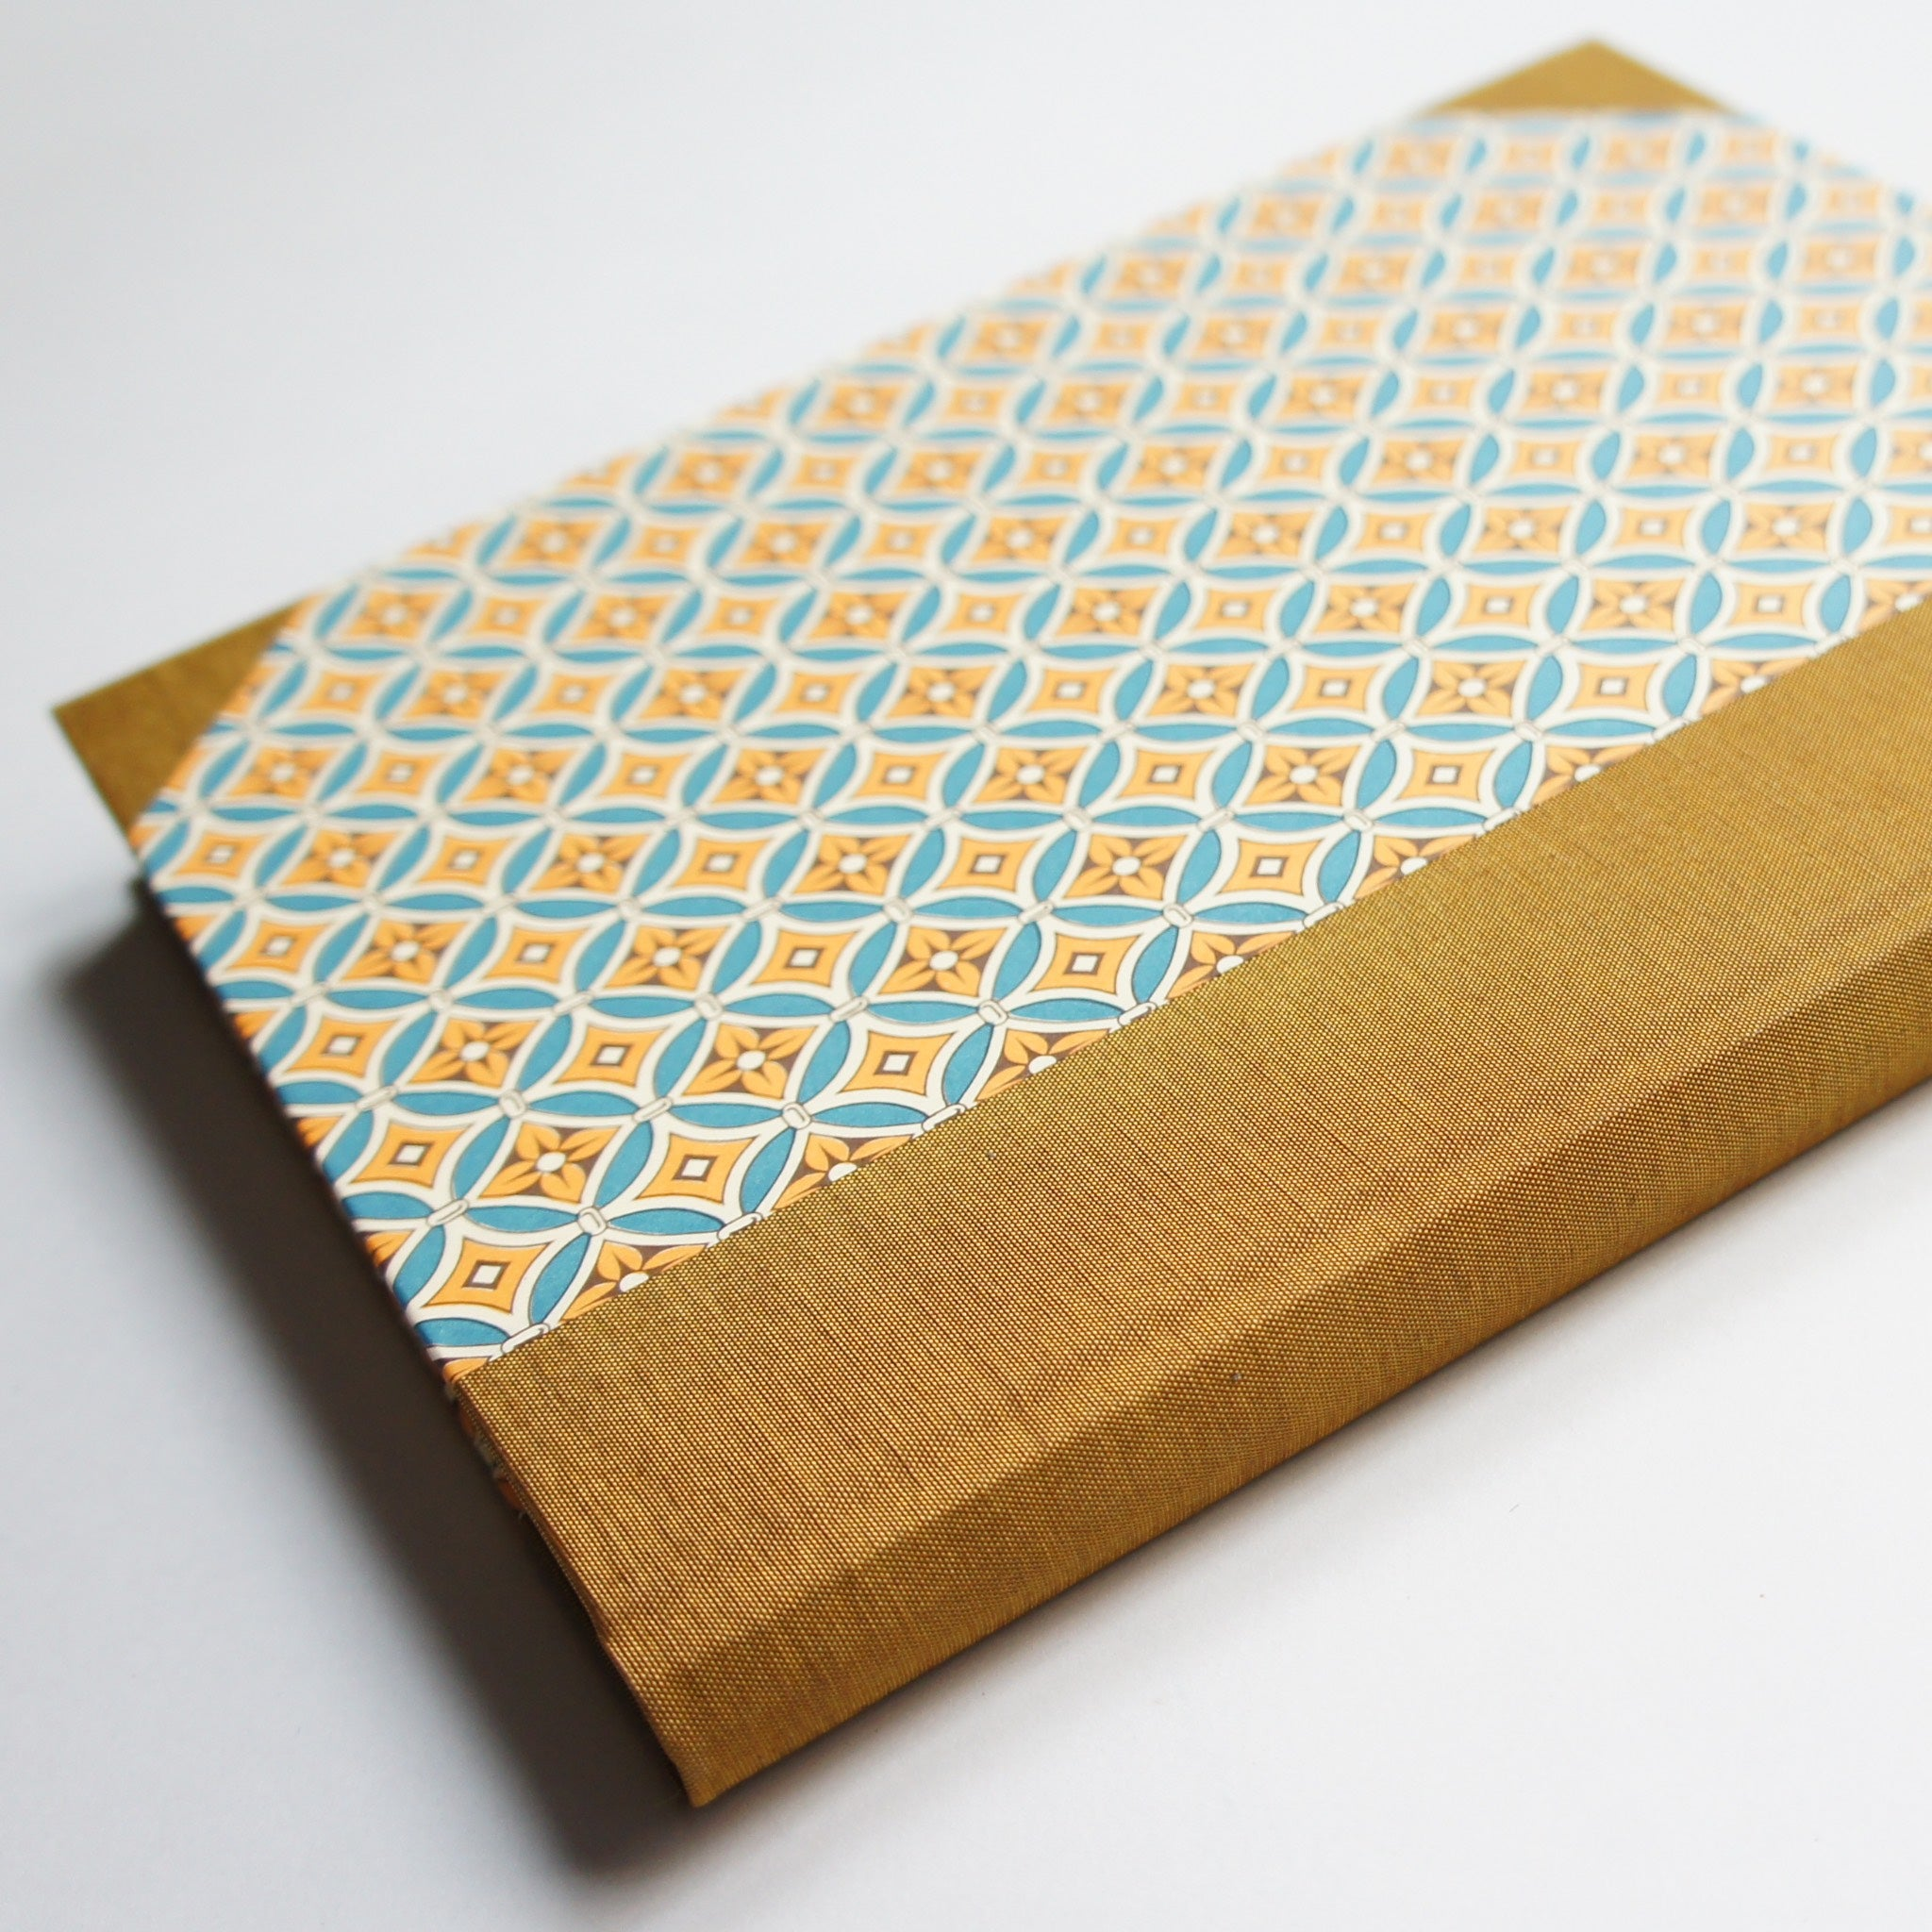 Vintage Notebook - Amber Tile Print